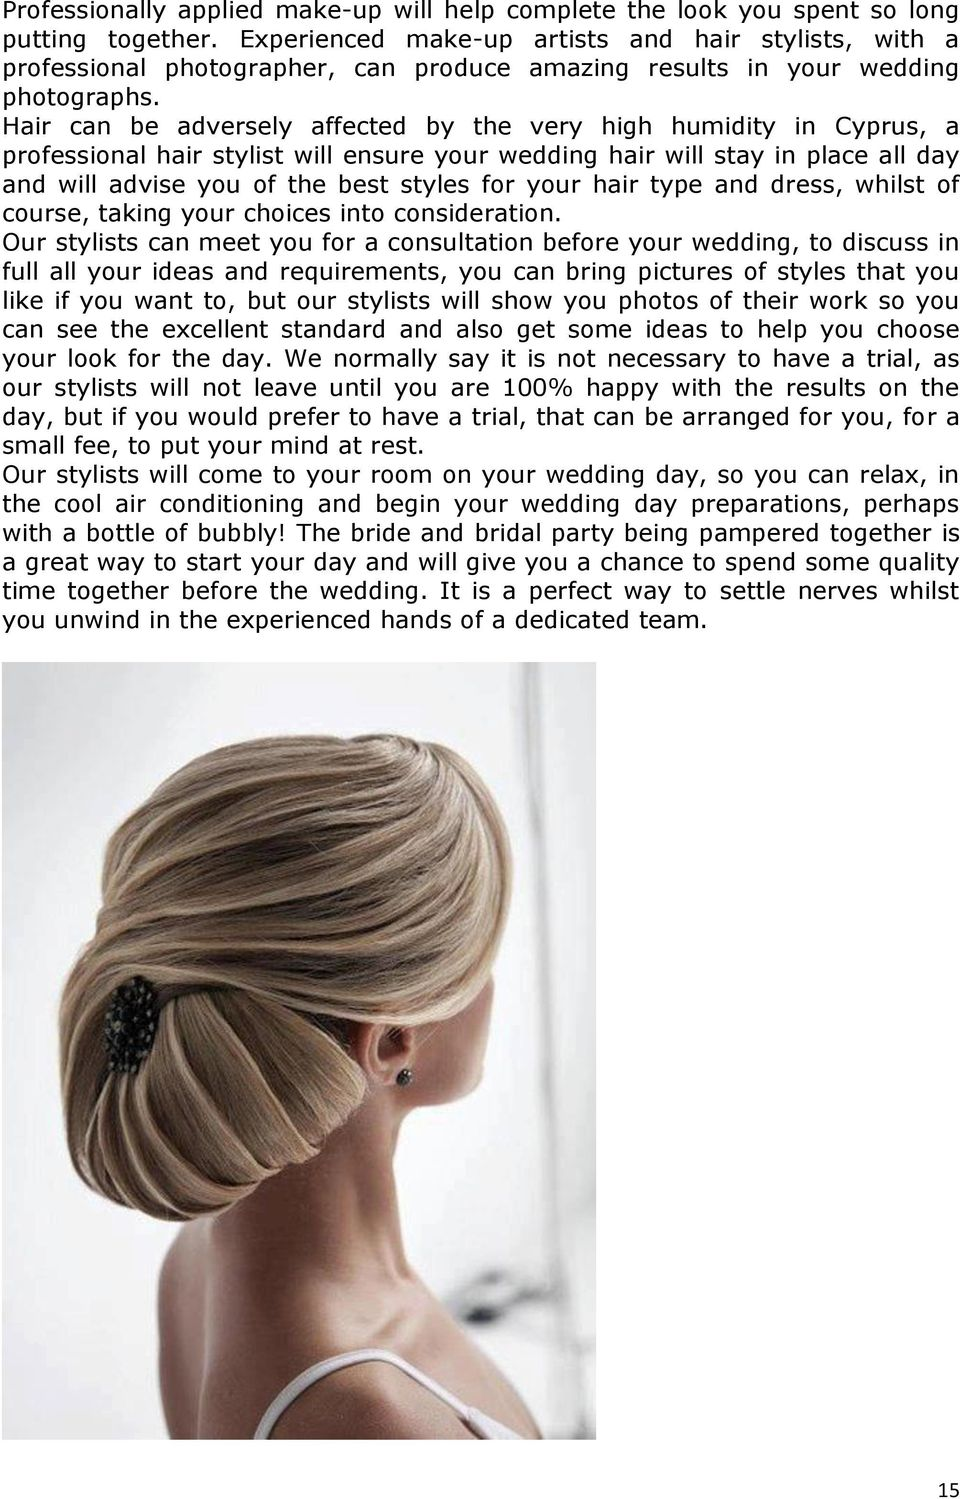 Hair can be adversely affected by the very high humidity in Cyprus, a professional hair stylist will ensure your wedding hair will stay in place all day and will advise you of the best styles for